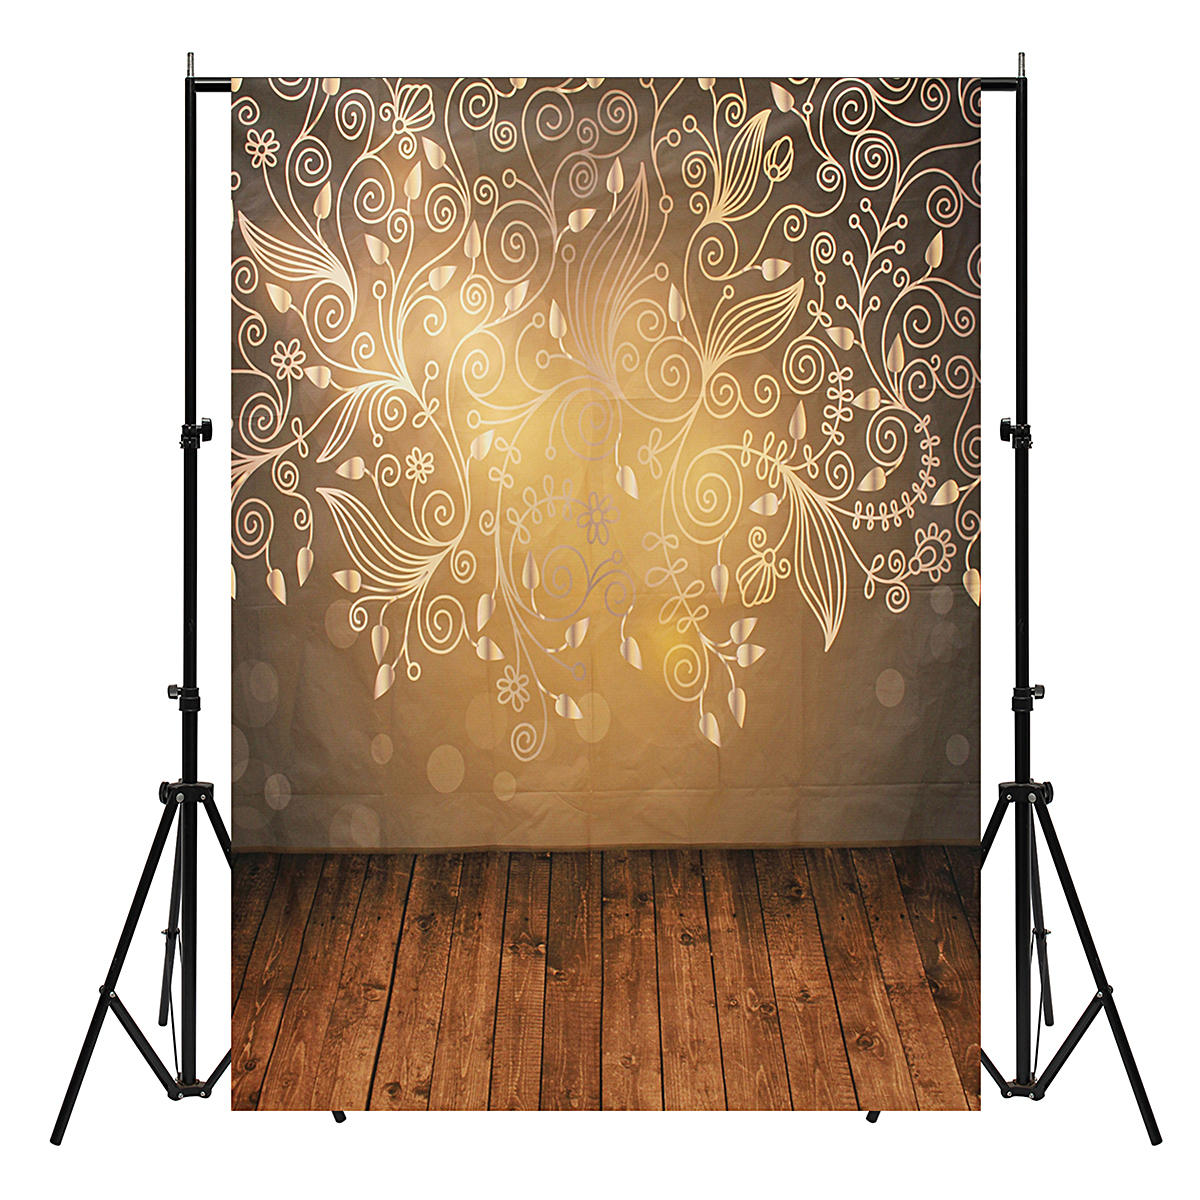 5x7ft vinyl wall wood floor photography backdrops photo studio 1200x1200